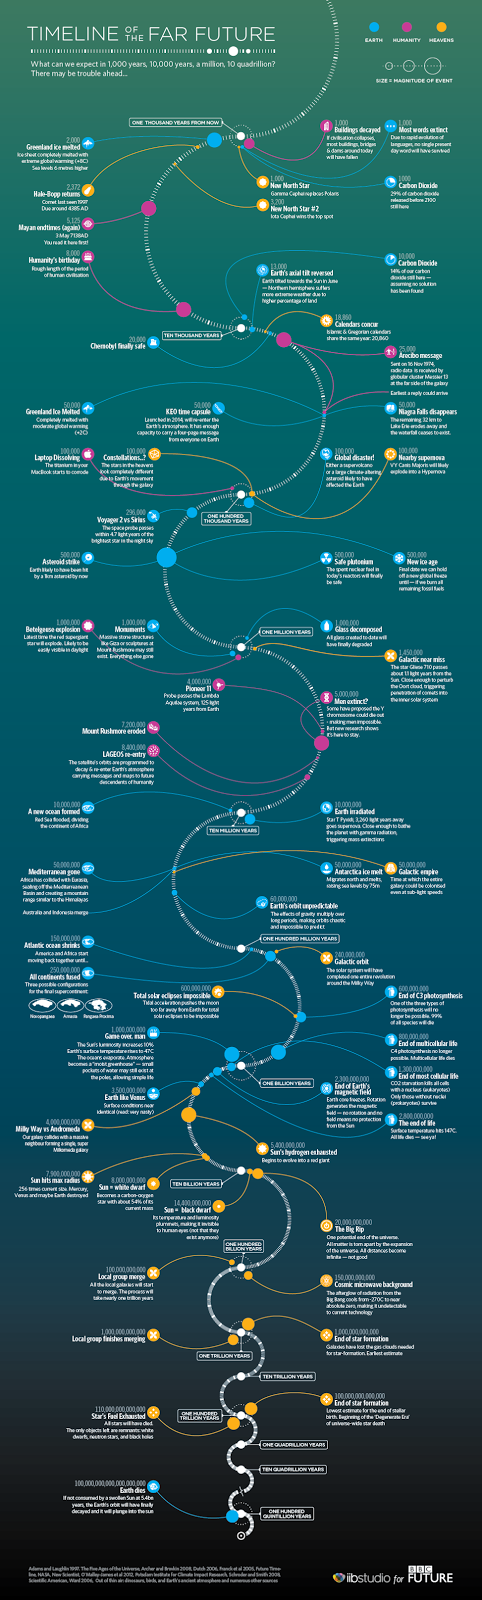 http://www.bbc.com/future/story/20140105-timeline-of-the-far-future